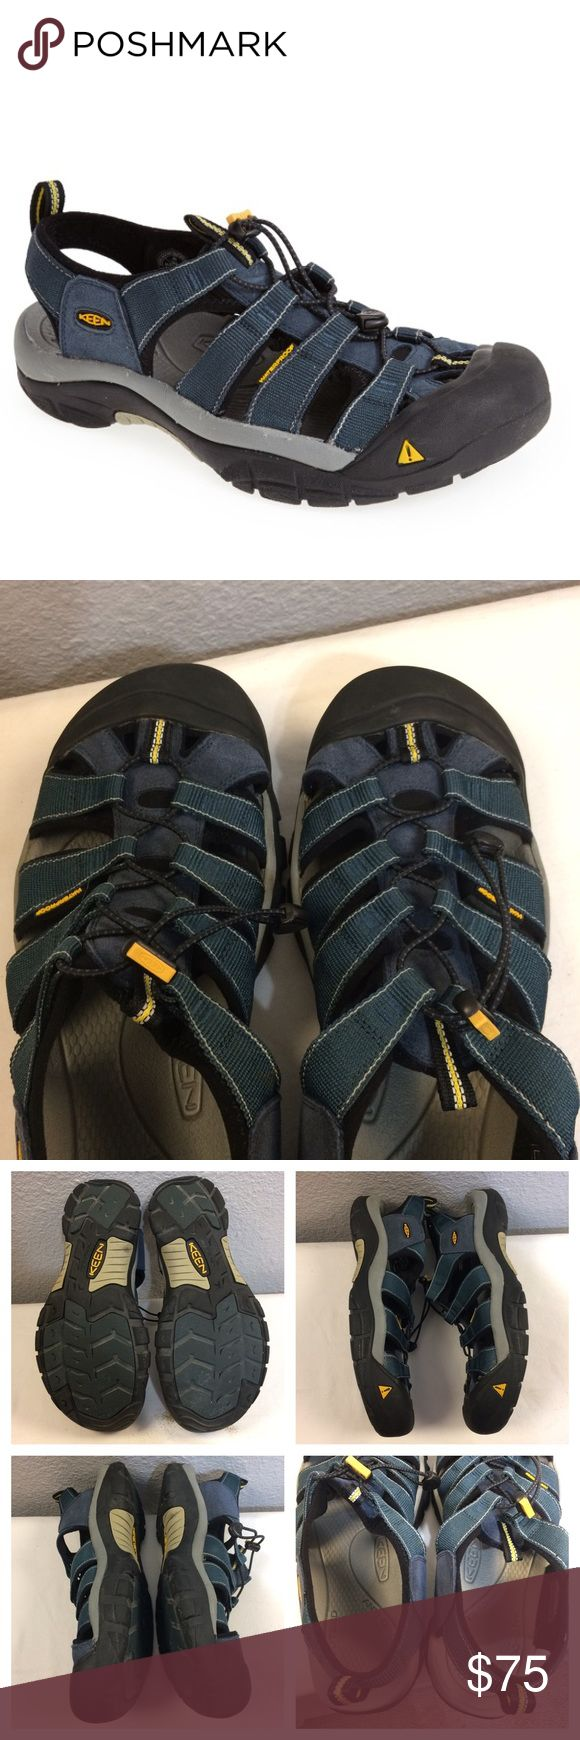 Men's Keen Newport H2 navy/grey water shoe Almost new Keen men's Newport H2. Like a sandal with toe protection. Used once. No marks or stains at all-not even in the insole!!!Great condition, washable with a rubber sole. Per Keen's site these run small. They are sized as 14 but fit 13.5. New style still available in stores for $99+. Please google Keen Newport H2 for more info. Keen Shoes